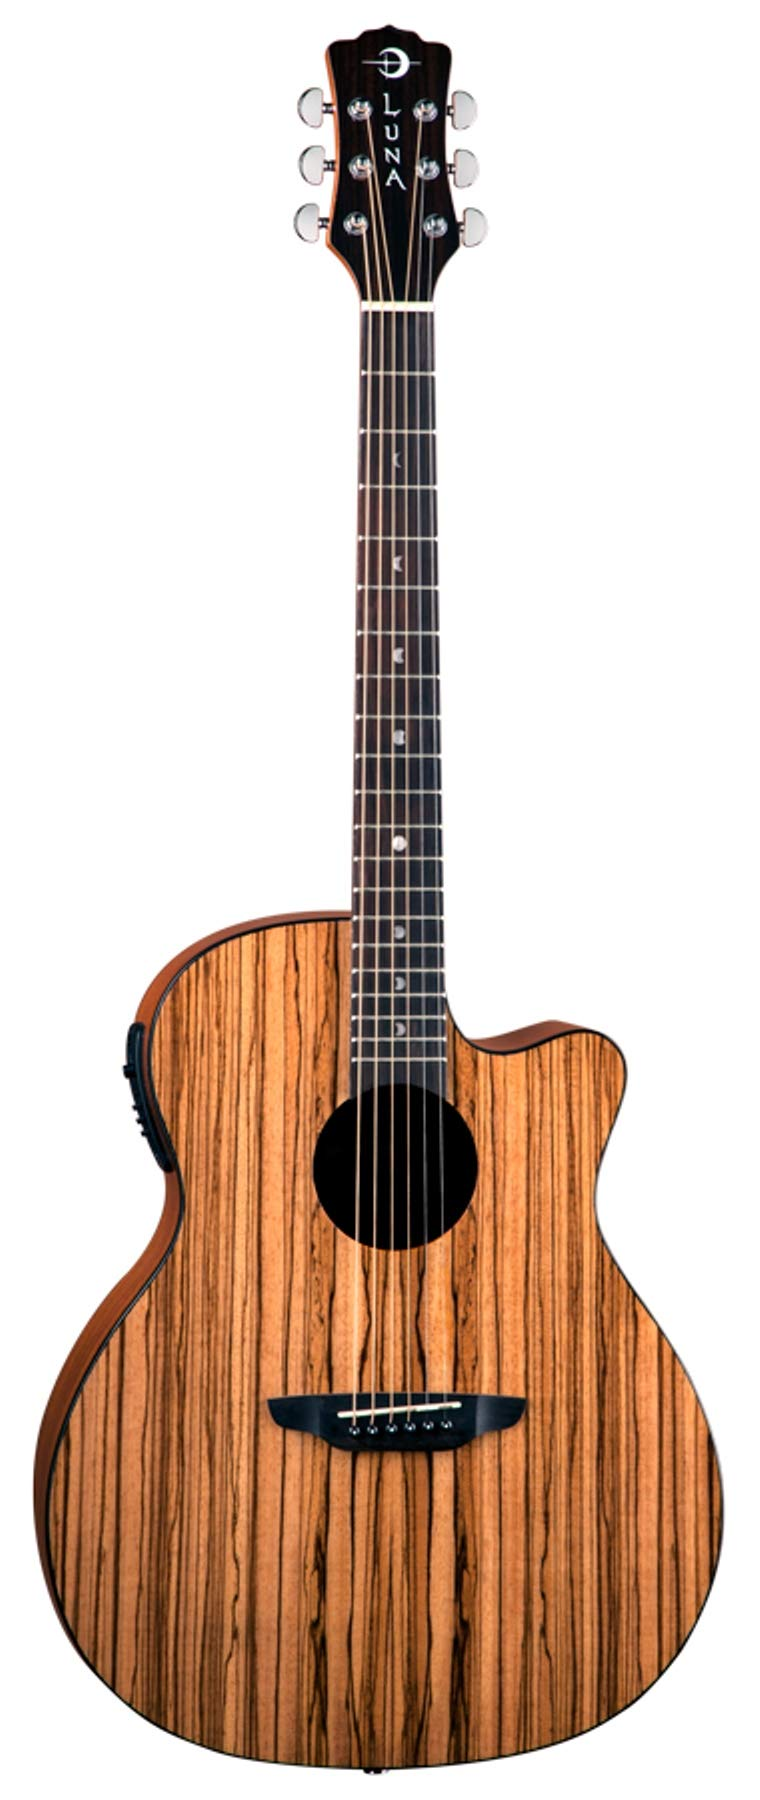 Luna GYP E ZBR Acoustic-Electric Guitar, Gloss Natural by Luna Guitars